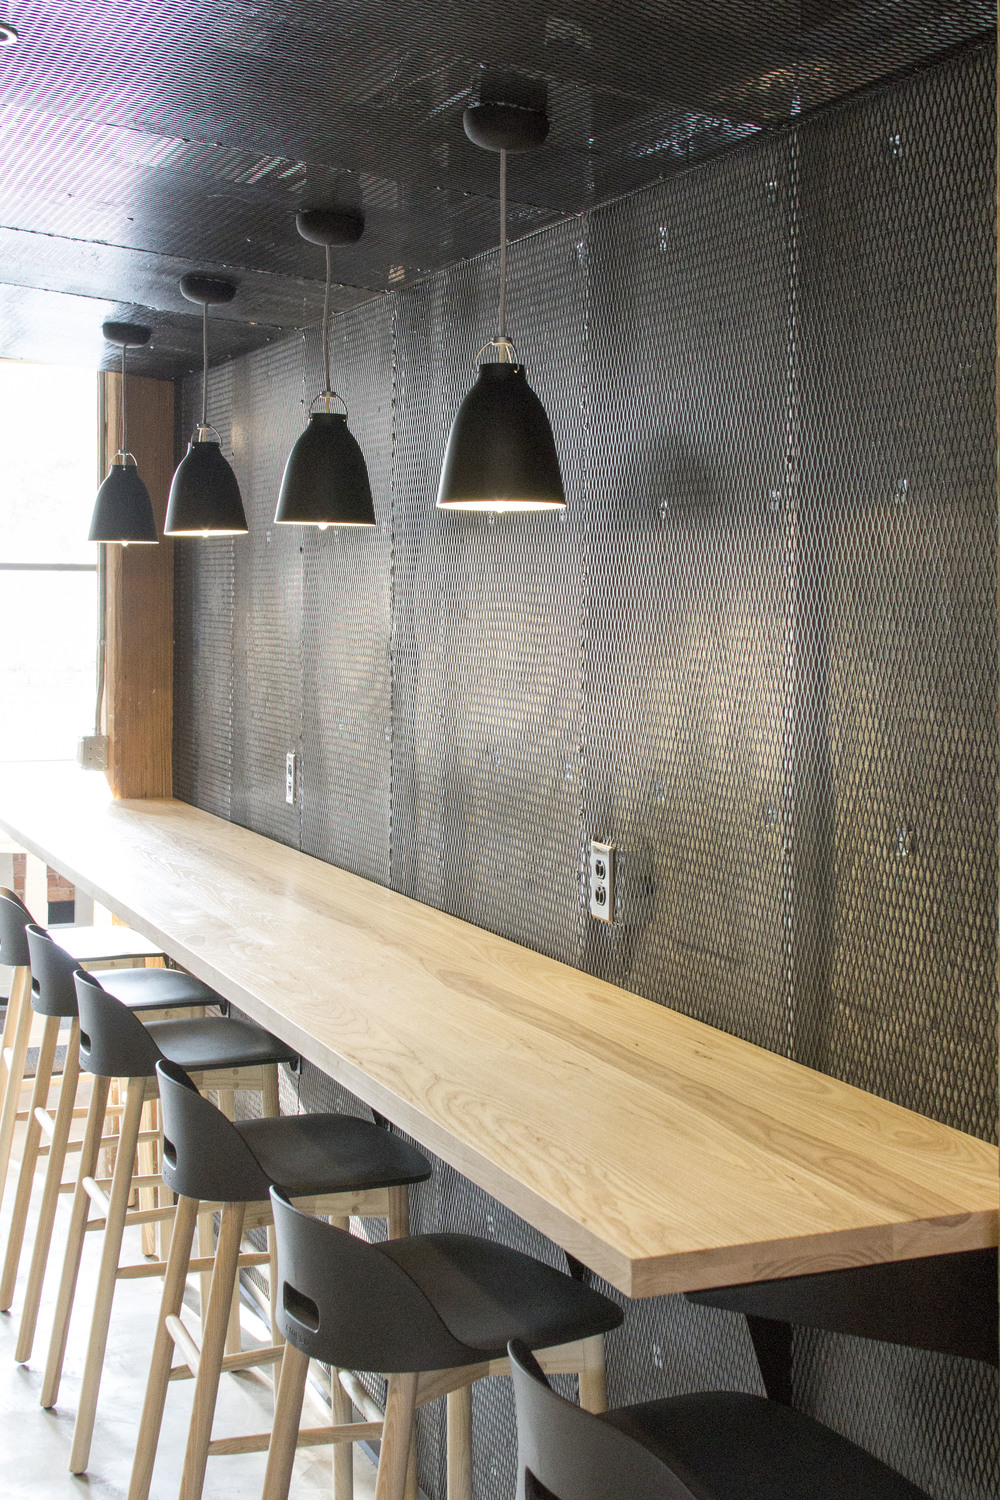 Duo Security Ann Arbor Office - By Synecdoche Design Studio